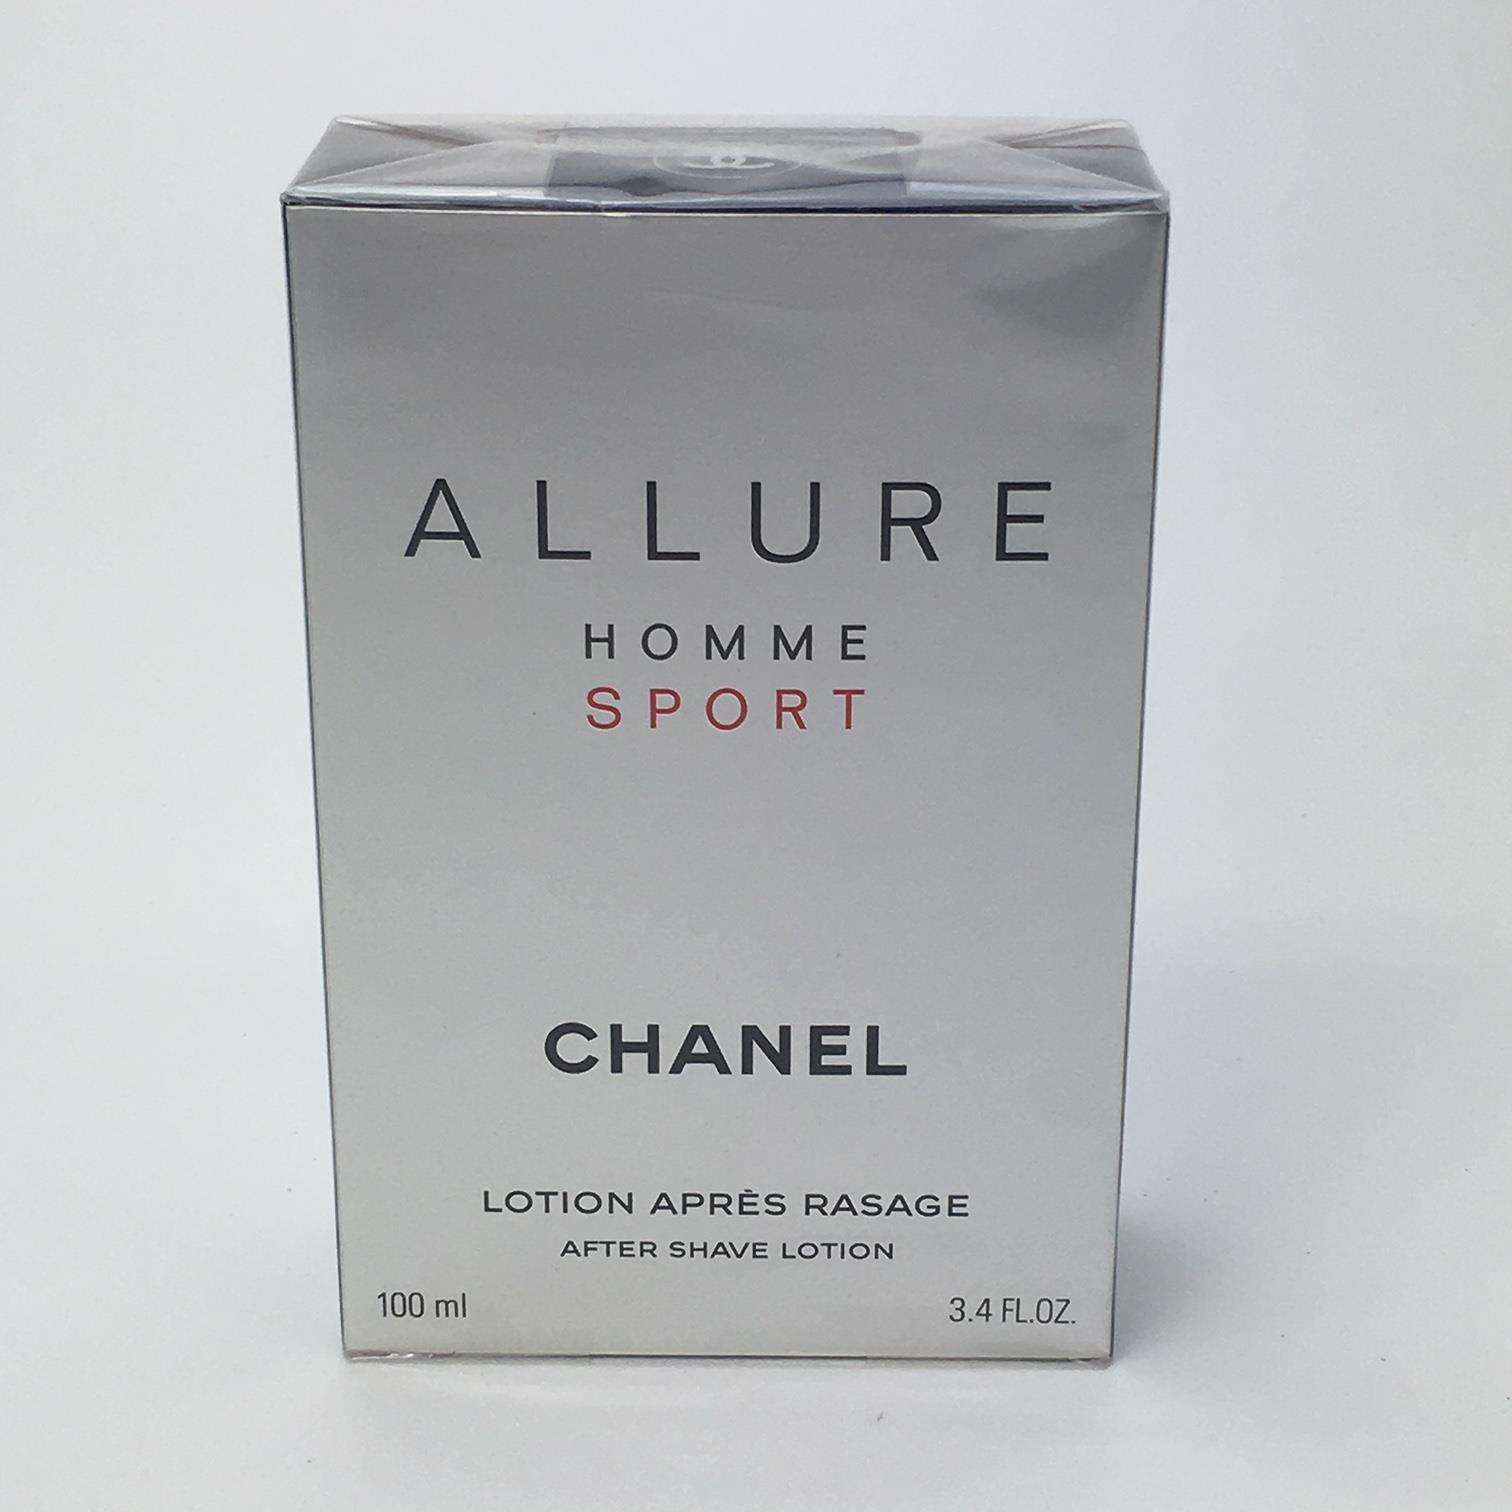 9807aa2b5489 ALLURE HOMME SPORT 100ml AFTER SHAVE LOTION BY CHANEL - Hares & Graces